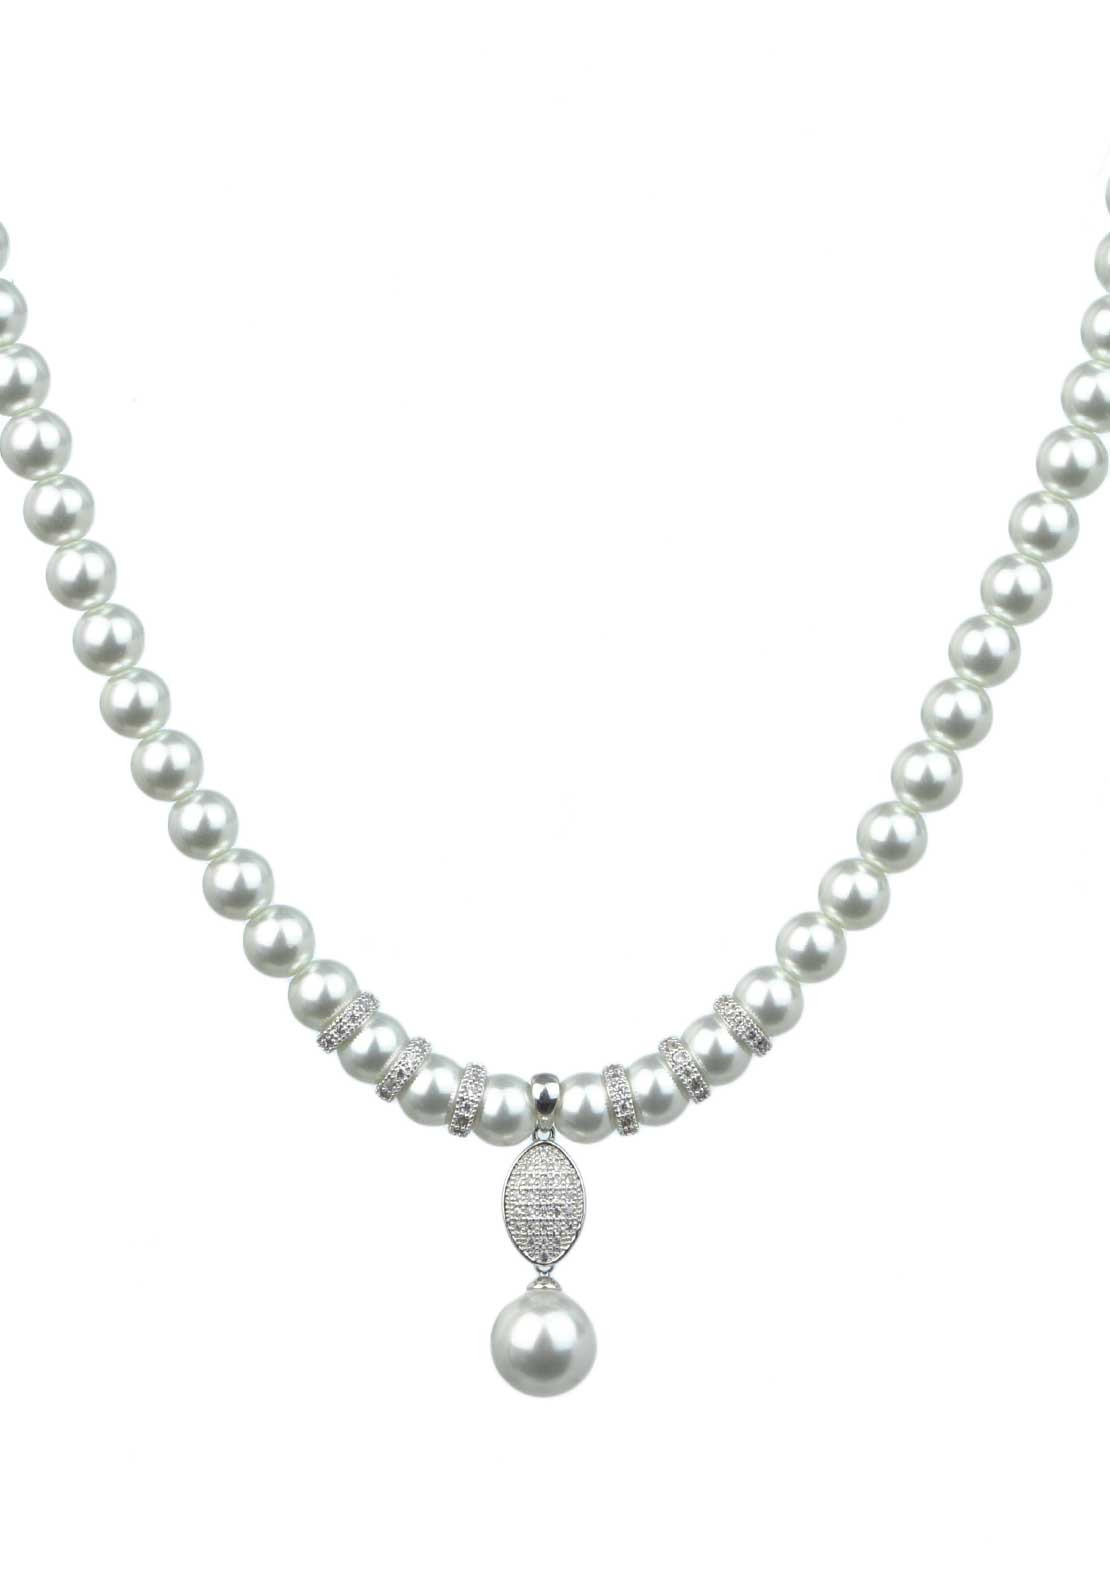 Absolute Jewellery Pearl Necklace with Pave Set Pearl Drop, White